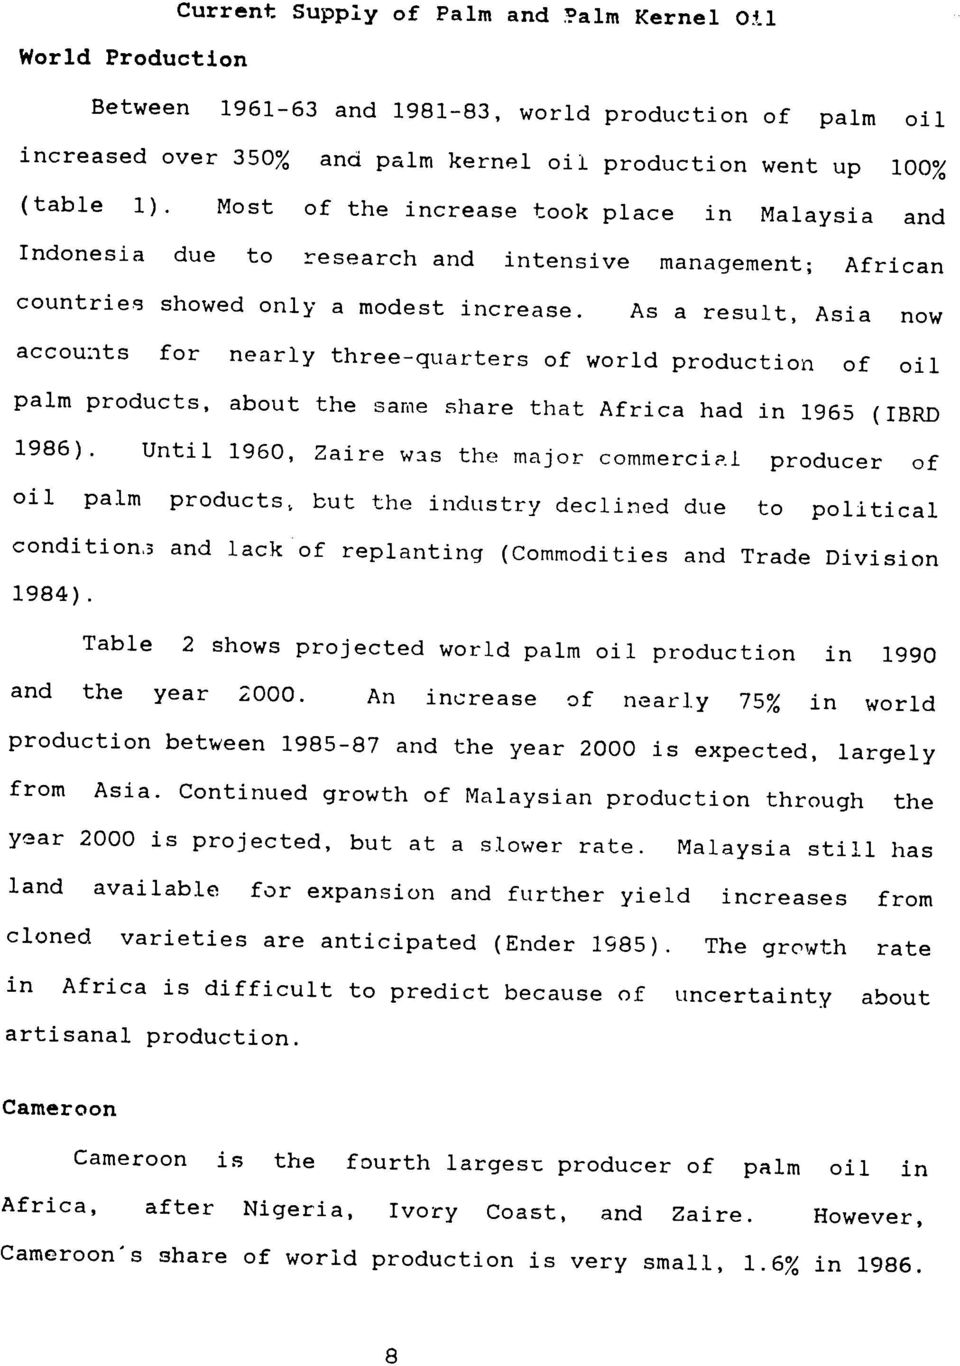 As a result, Asia now accounts for nearly three-quarters of world production of oil palm products, about the same share that Africa had in 1965 (IBRD 1986).